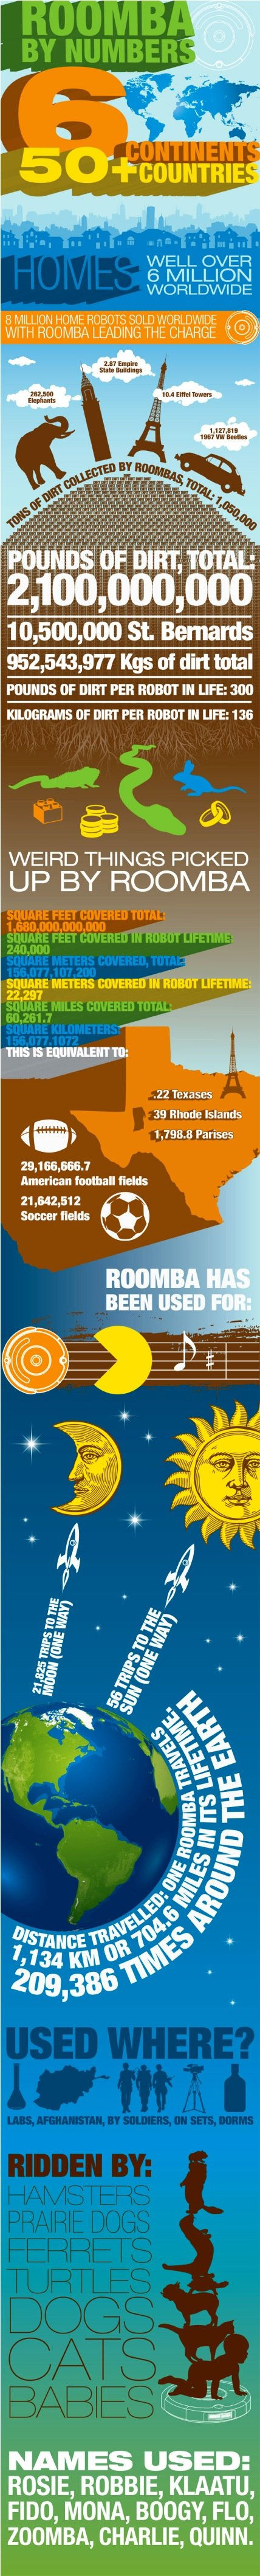 Roomba by numbers #infographic